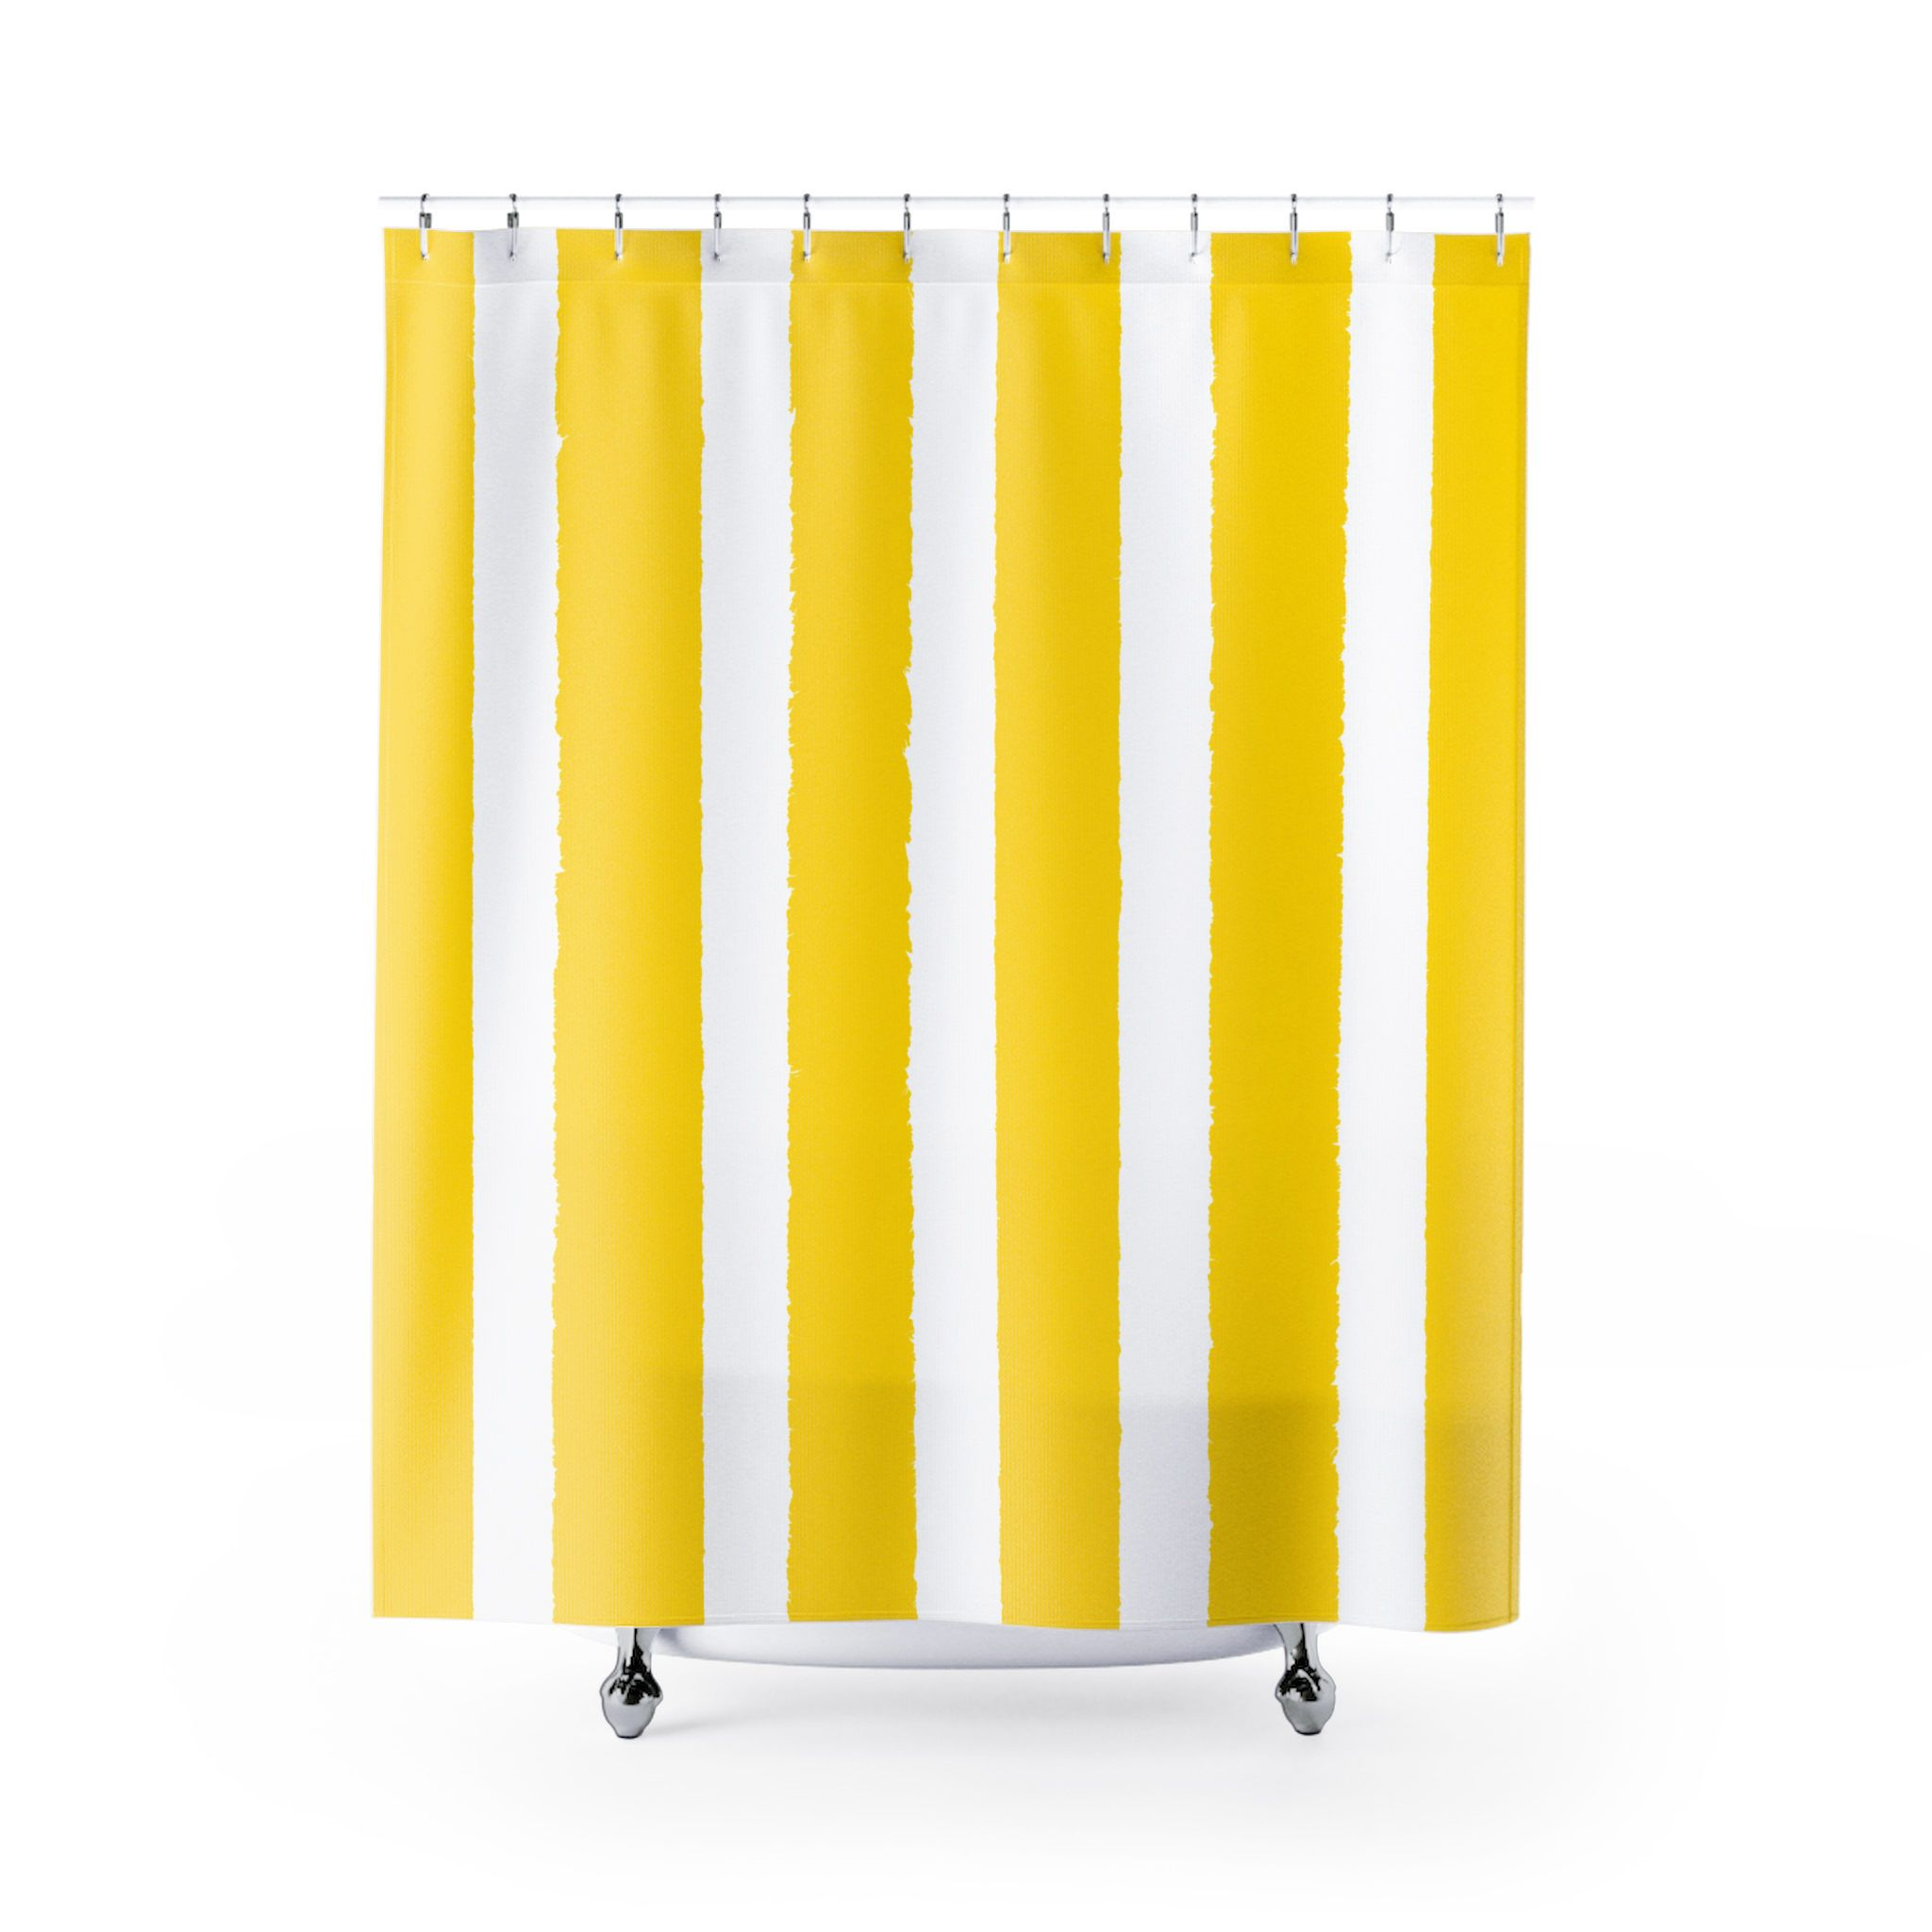 purity yellow bed reviews evideco striped shower orchid curtain pdx bath wayfair printed